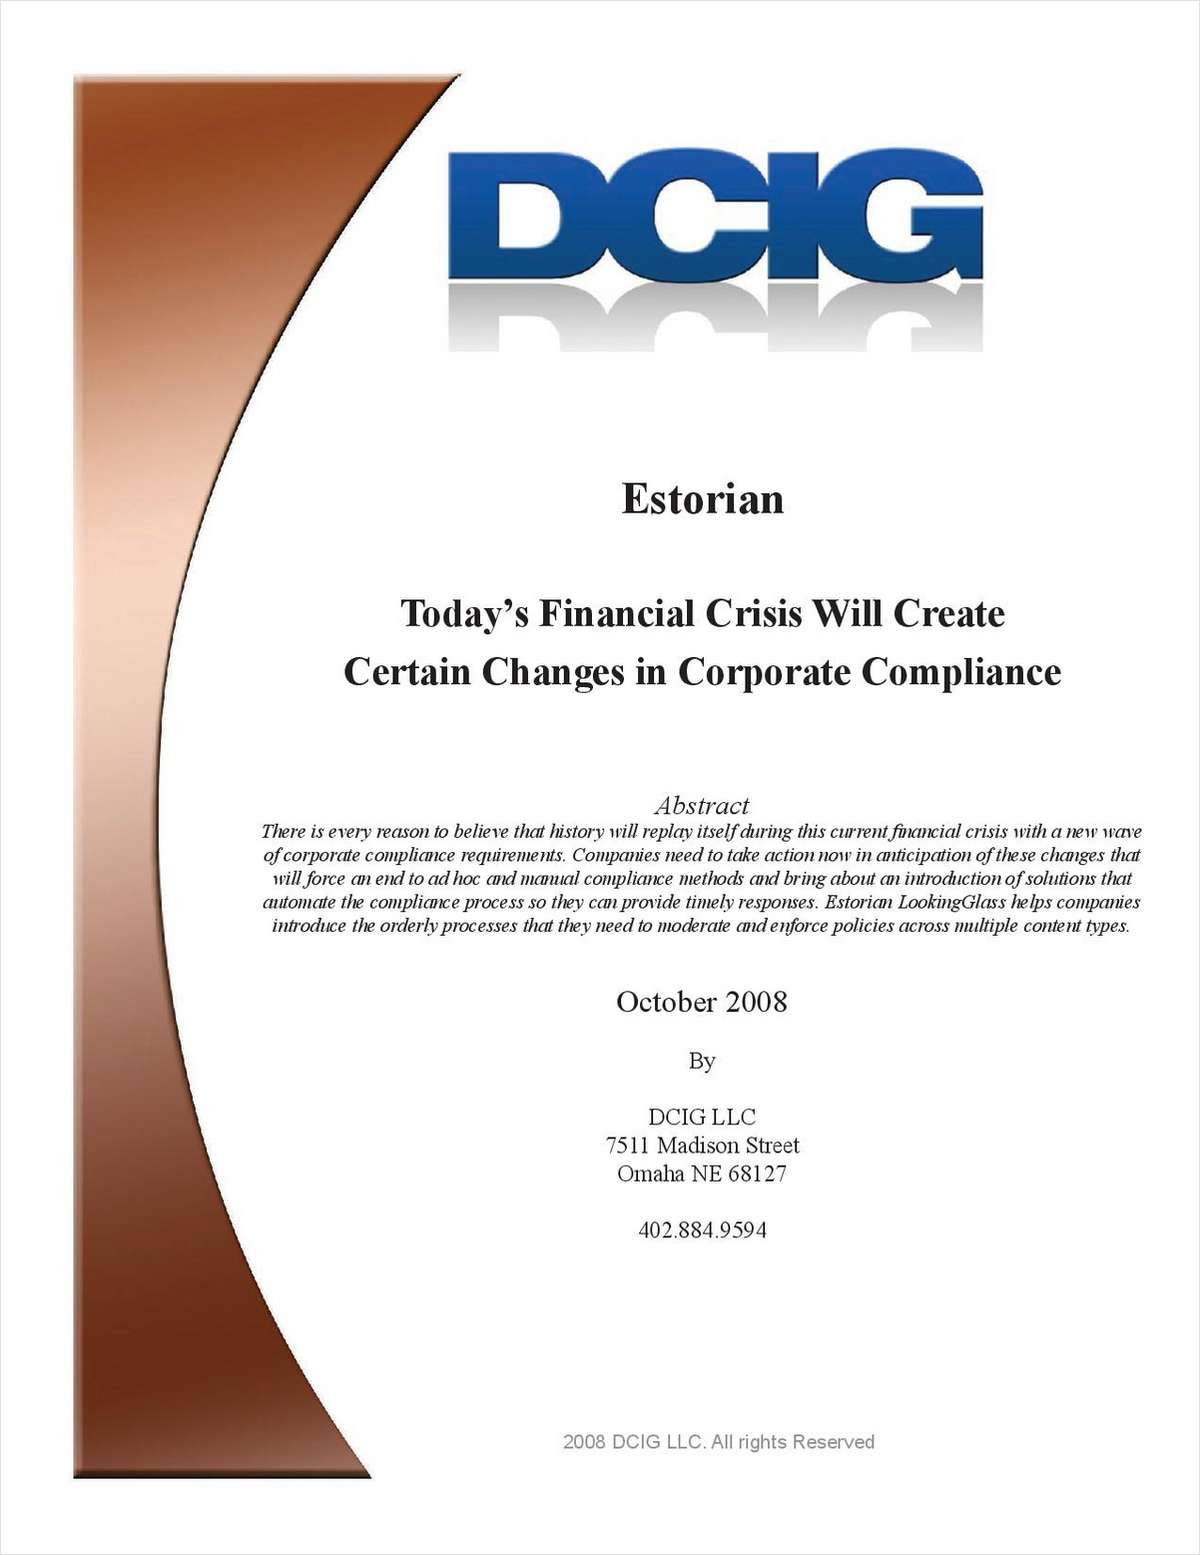 Today's Financial Crisis and the Impact on Corporate Compliance